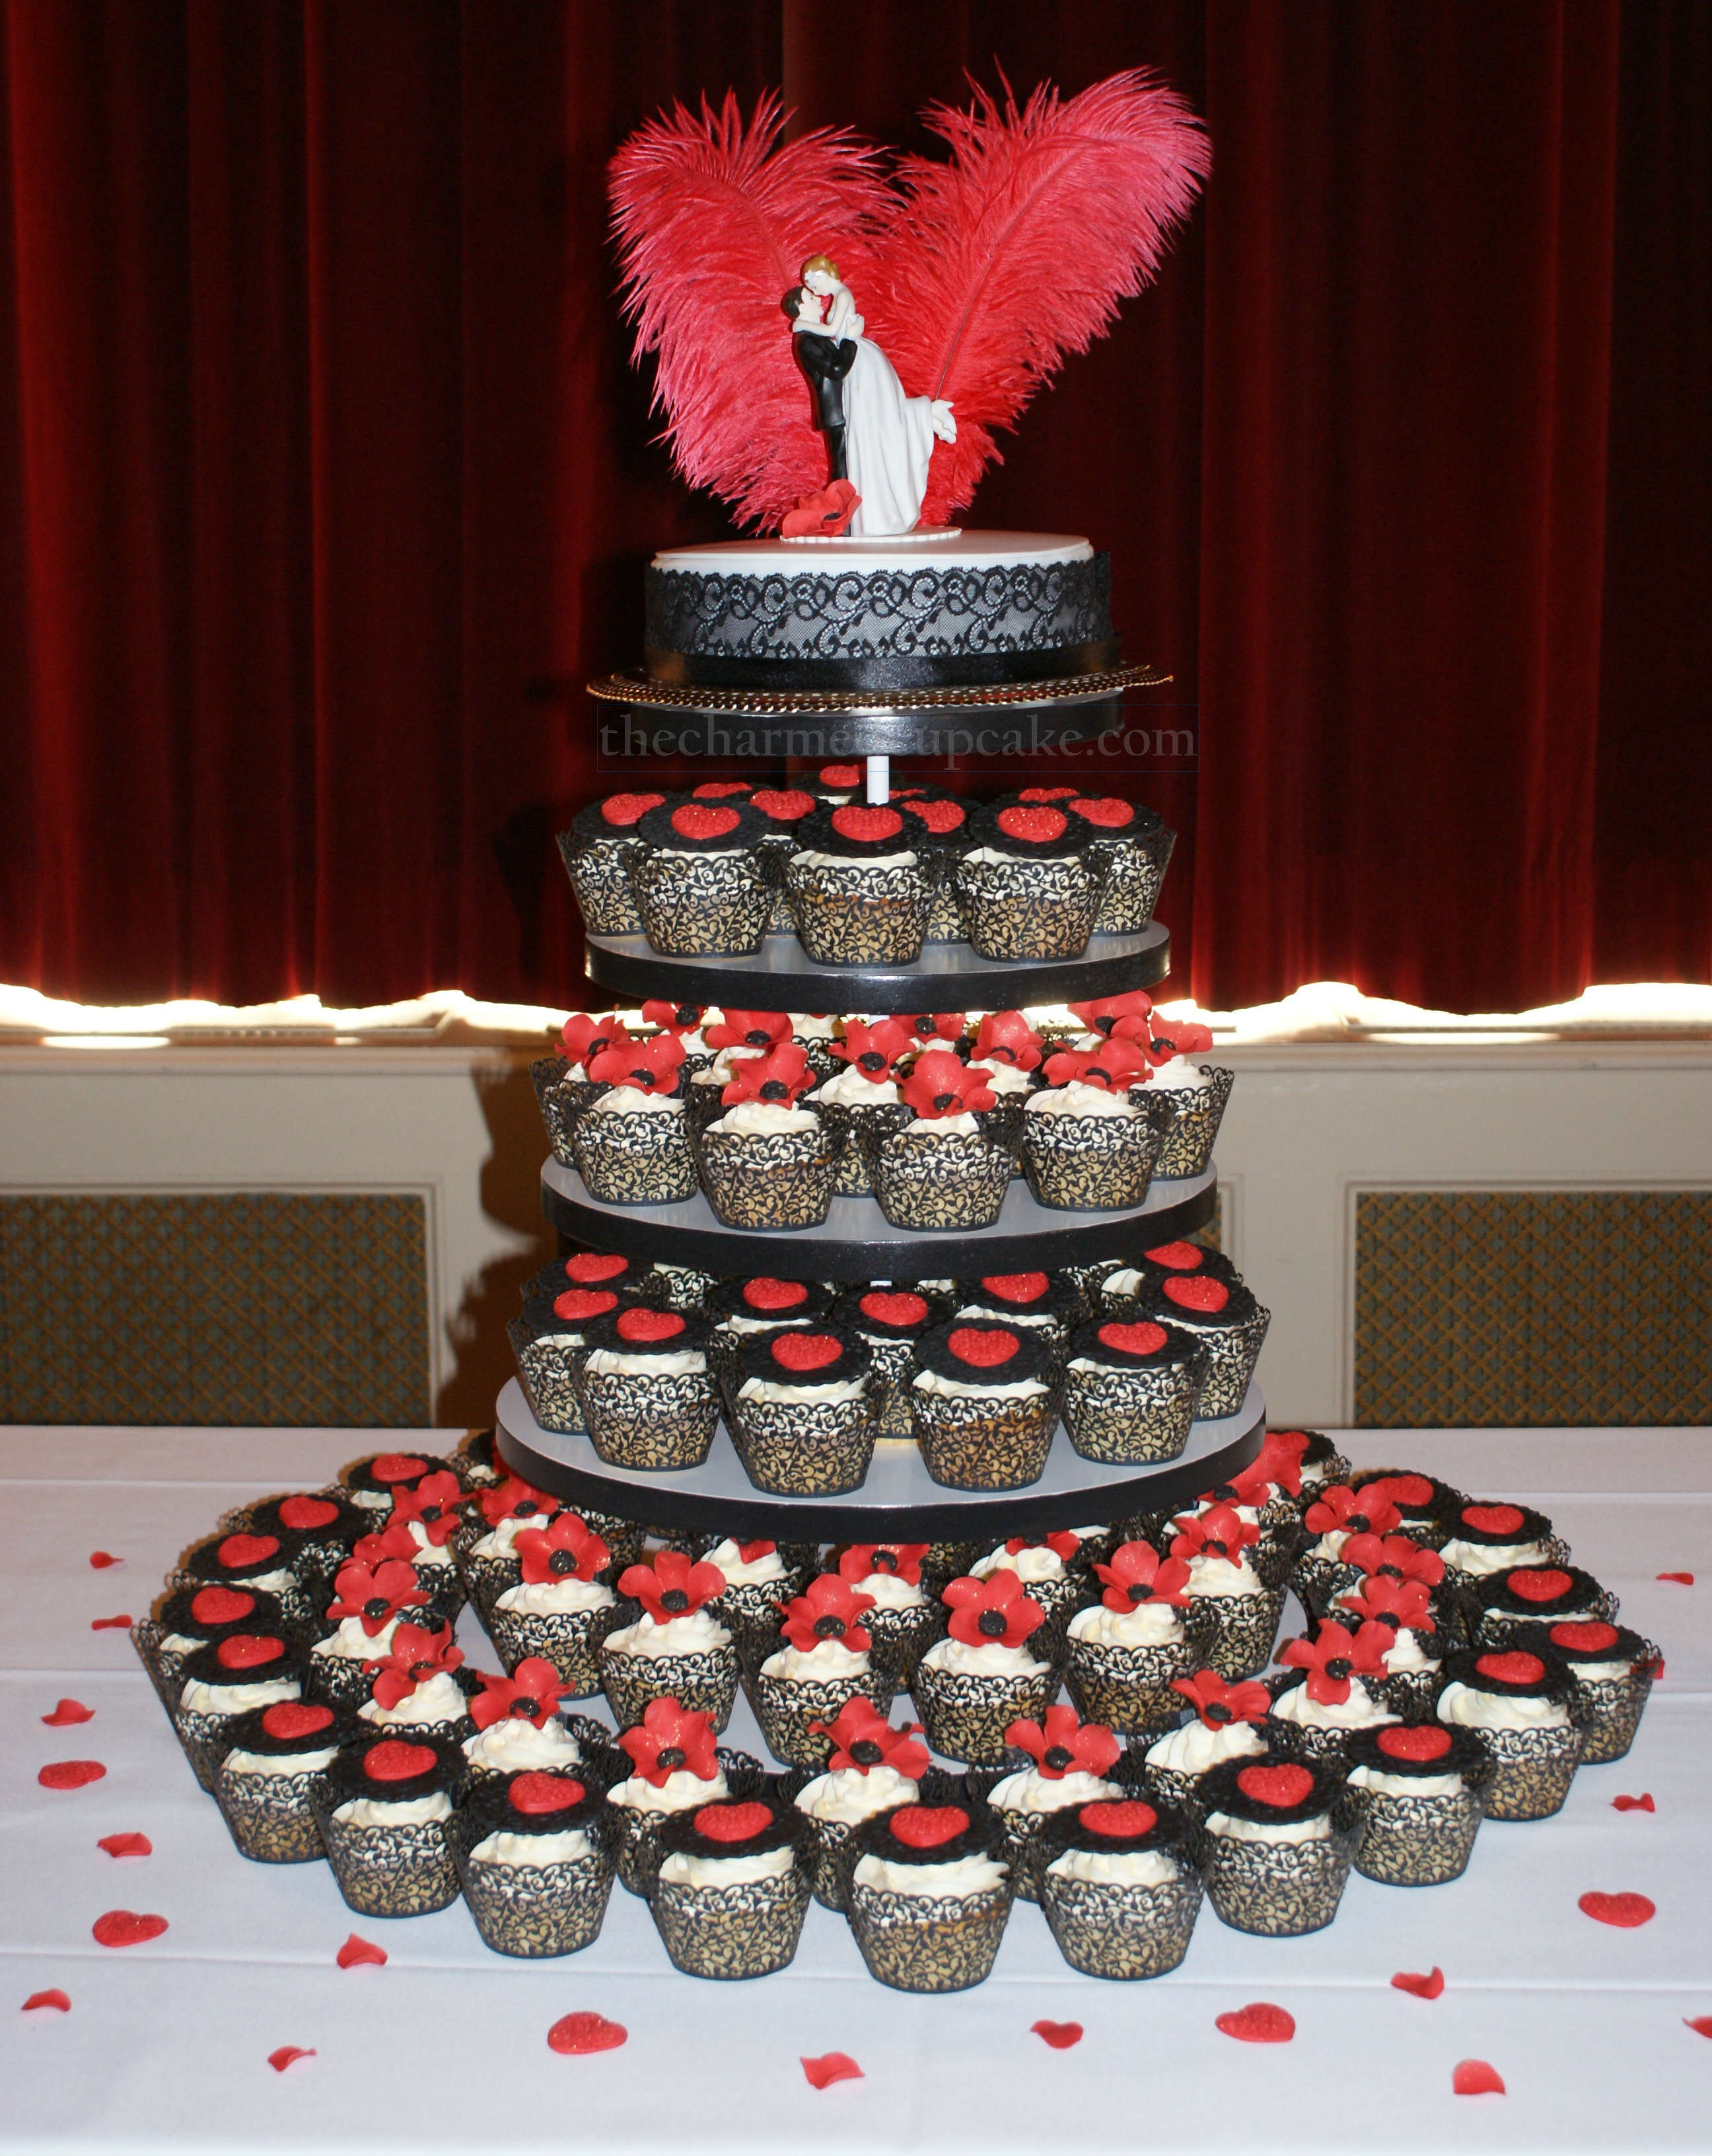 Uncategorized cupcake stands for weddings cheap - Wedding Cake And Cupcakes